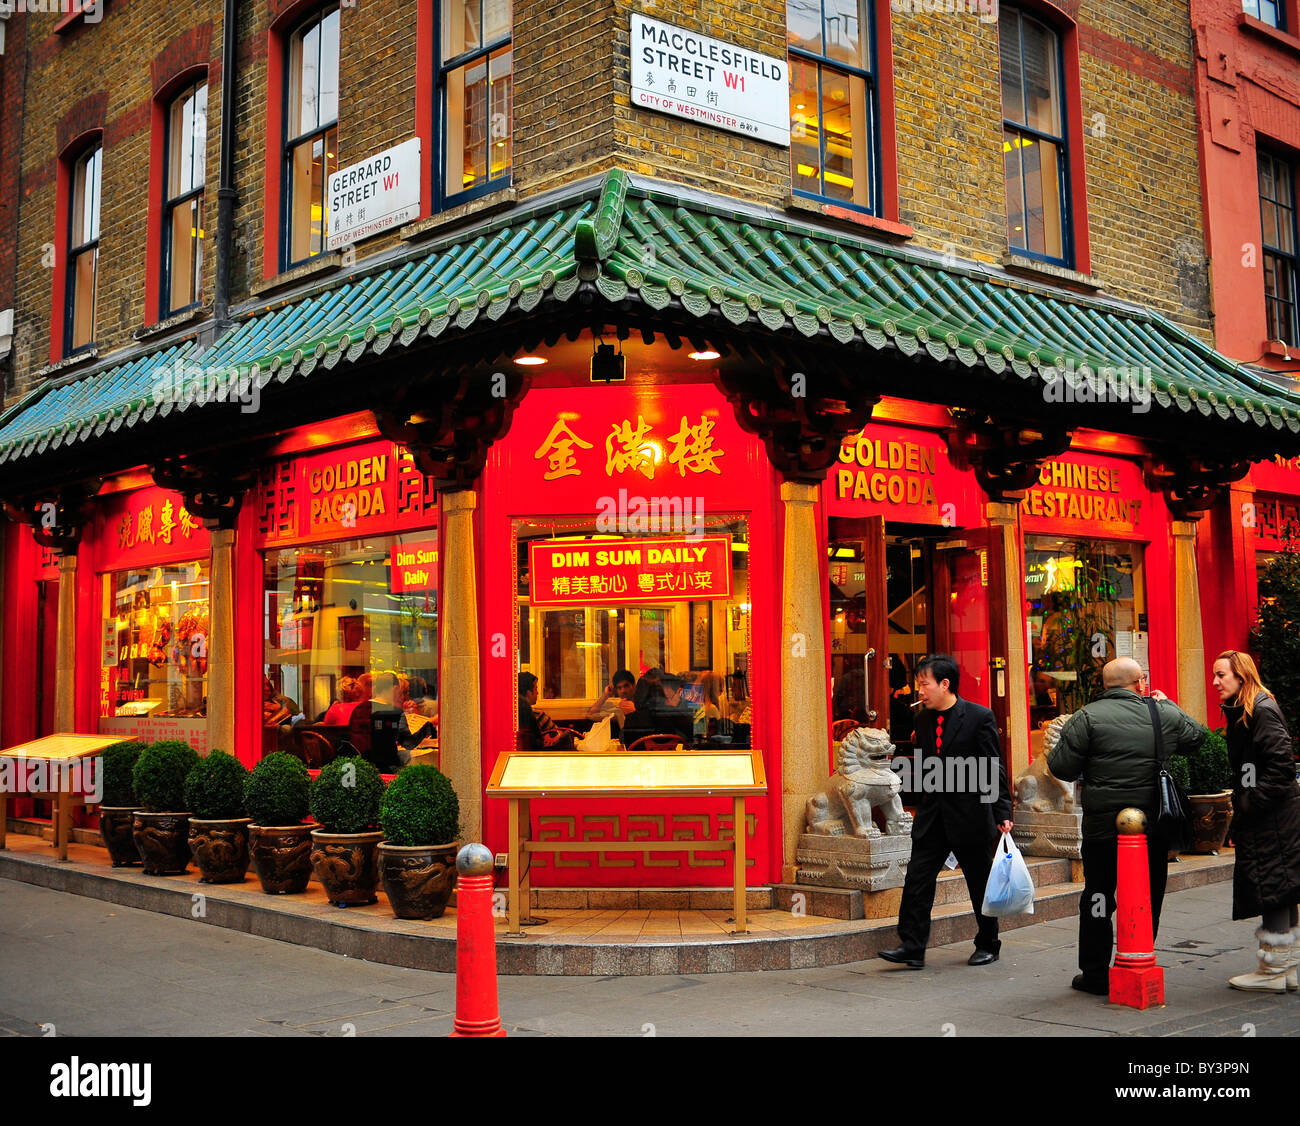 golden pagoda restaurant in china town london stock photo 33889457 alamy. Black Bedroom Furniture Sets. Home Design Ideas